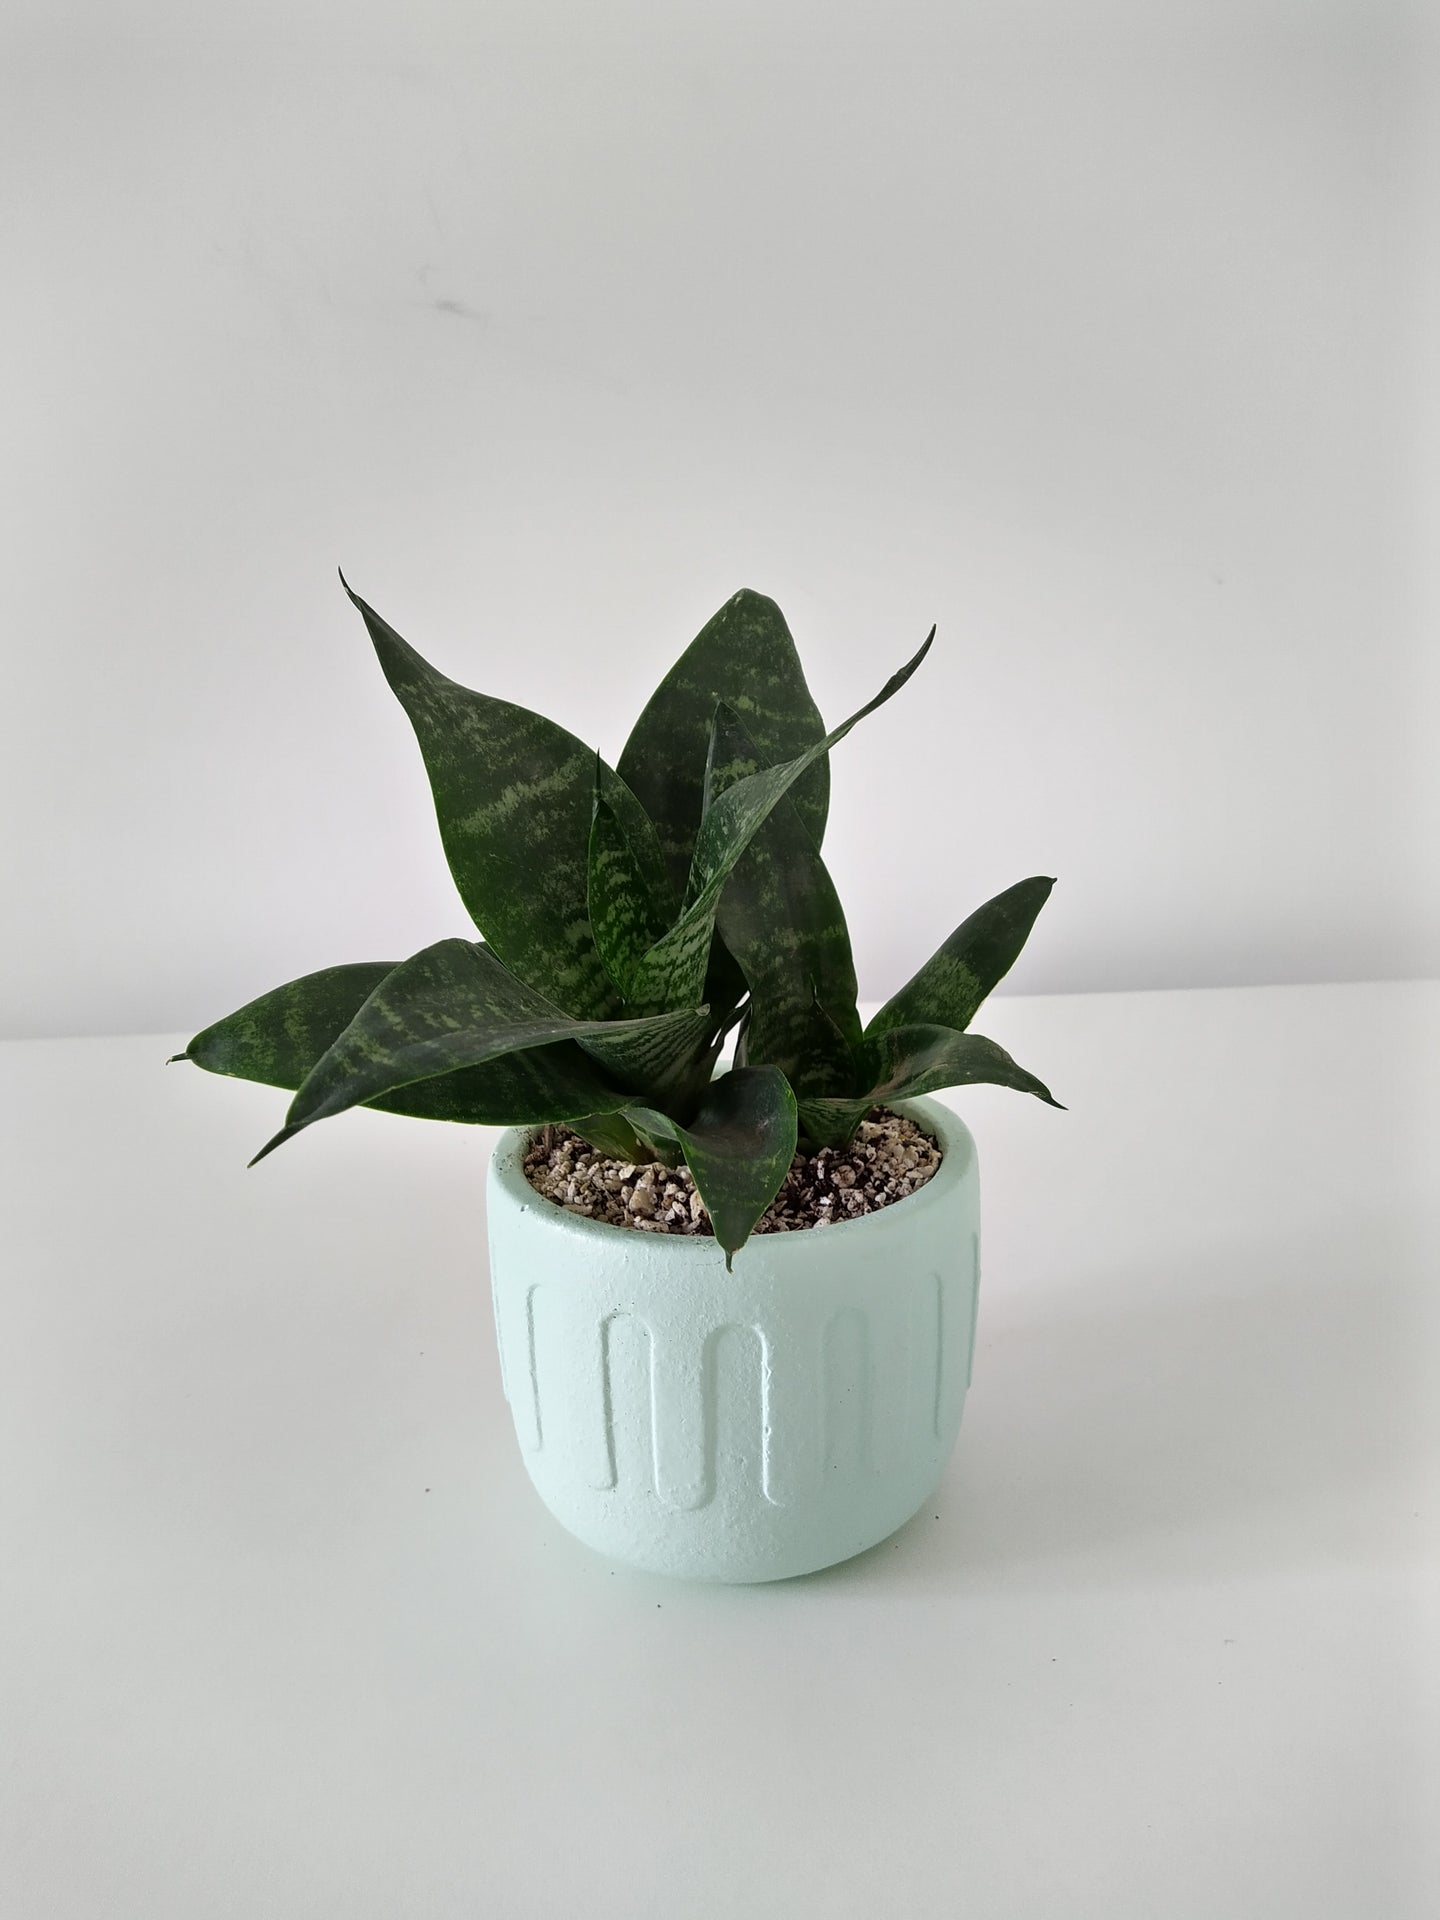 ISB/RWP ONLY - Birds nest snake plant in 'greek' (mint)